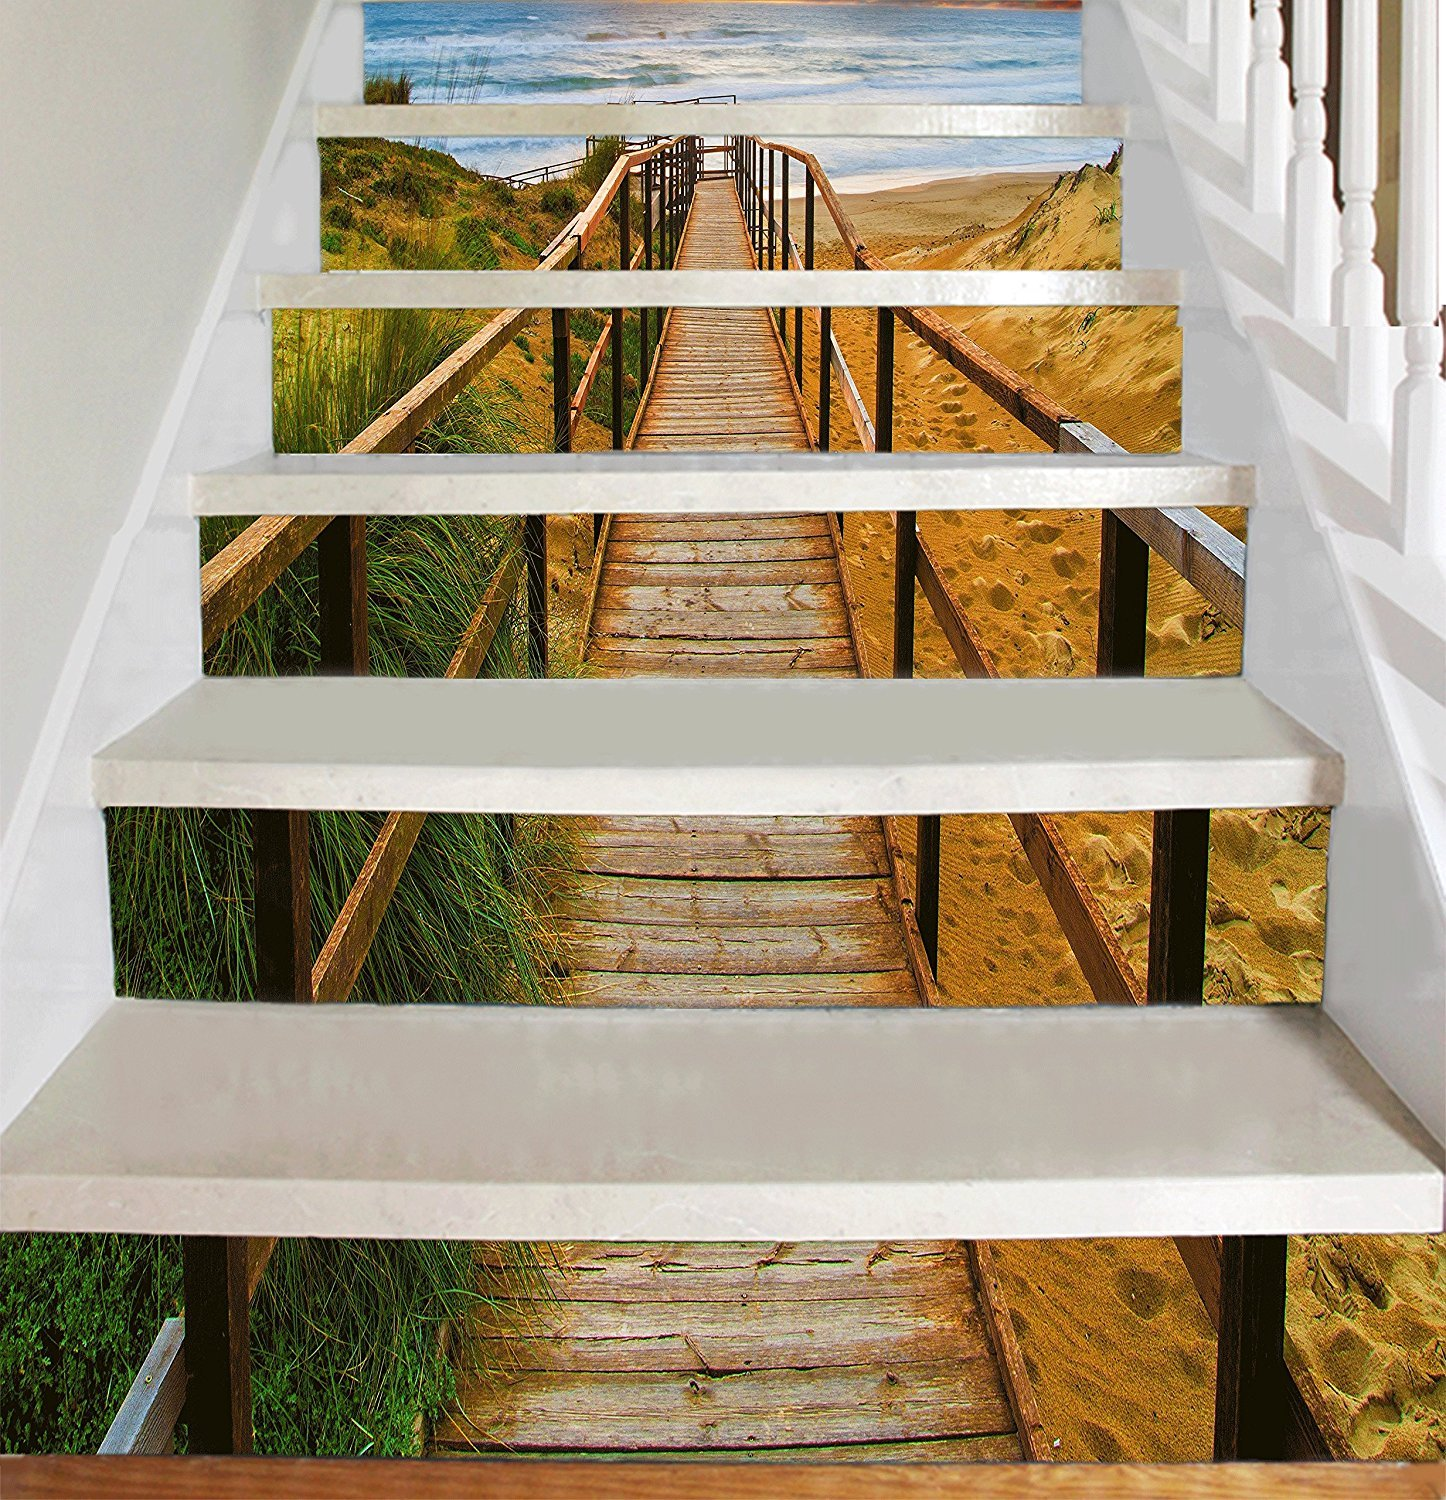 Amazon Vinyl Decal Strips for Stair Risers Stairway to Sea